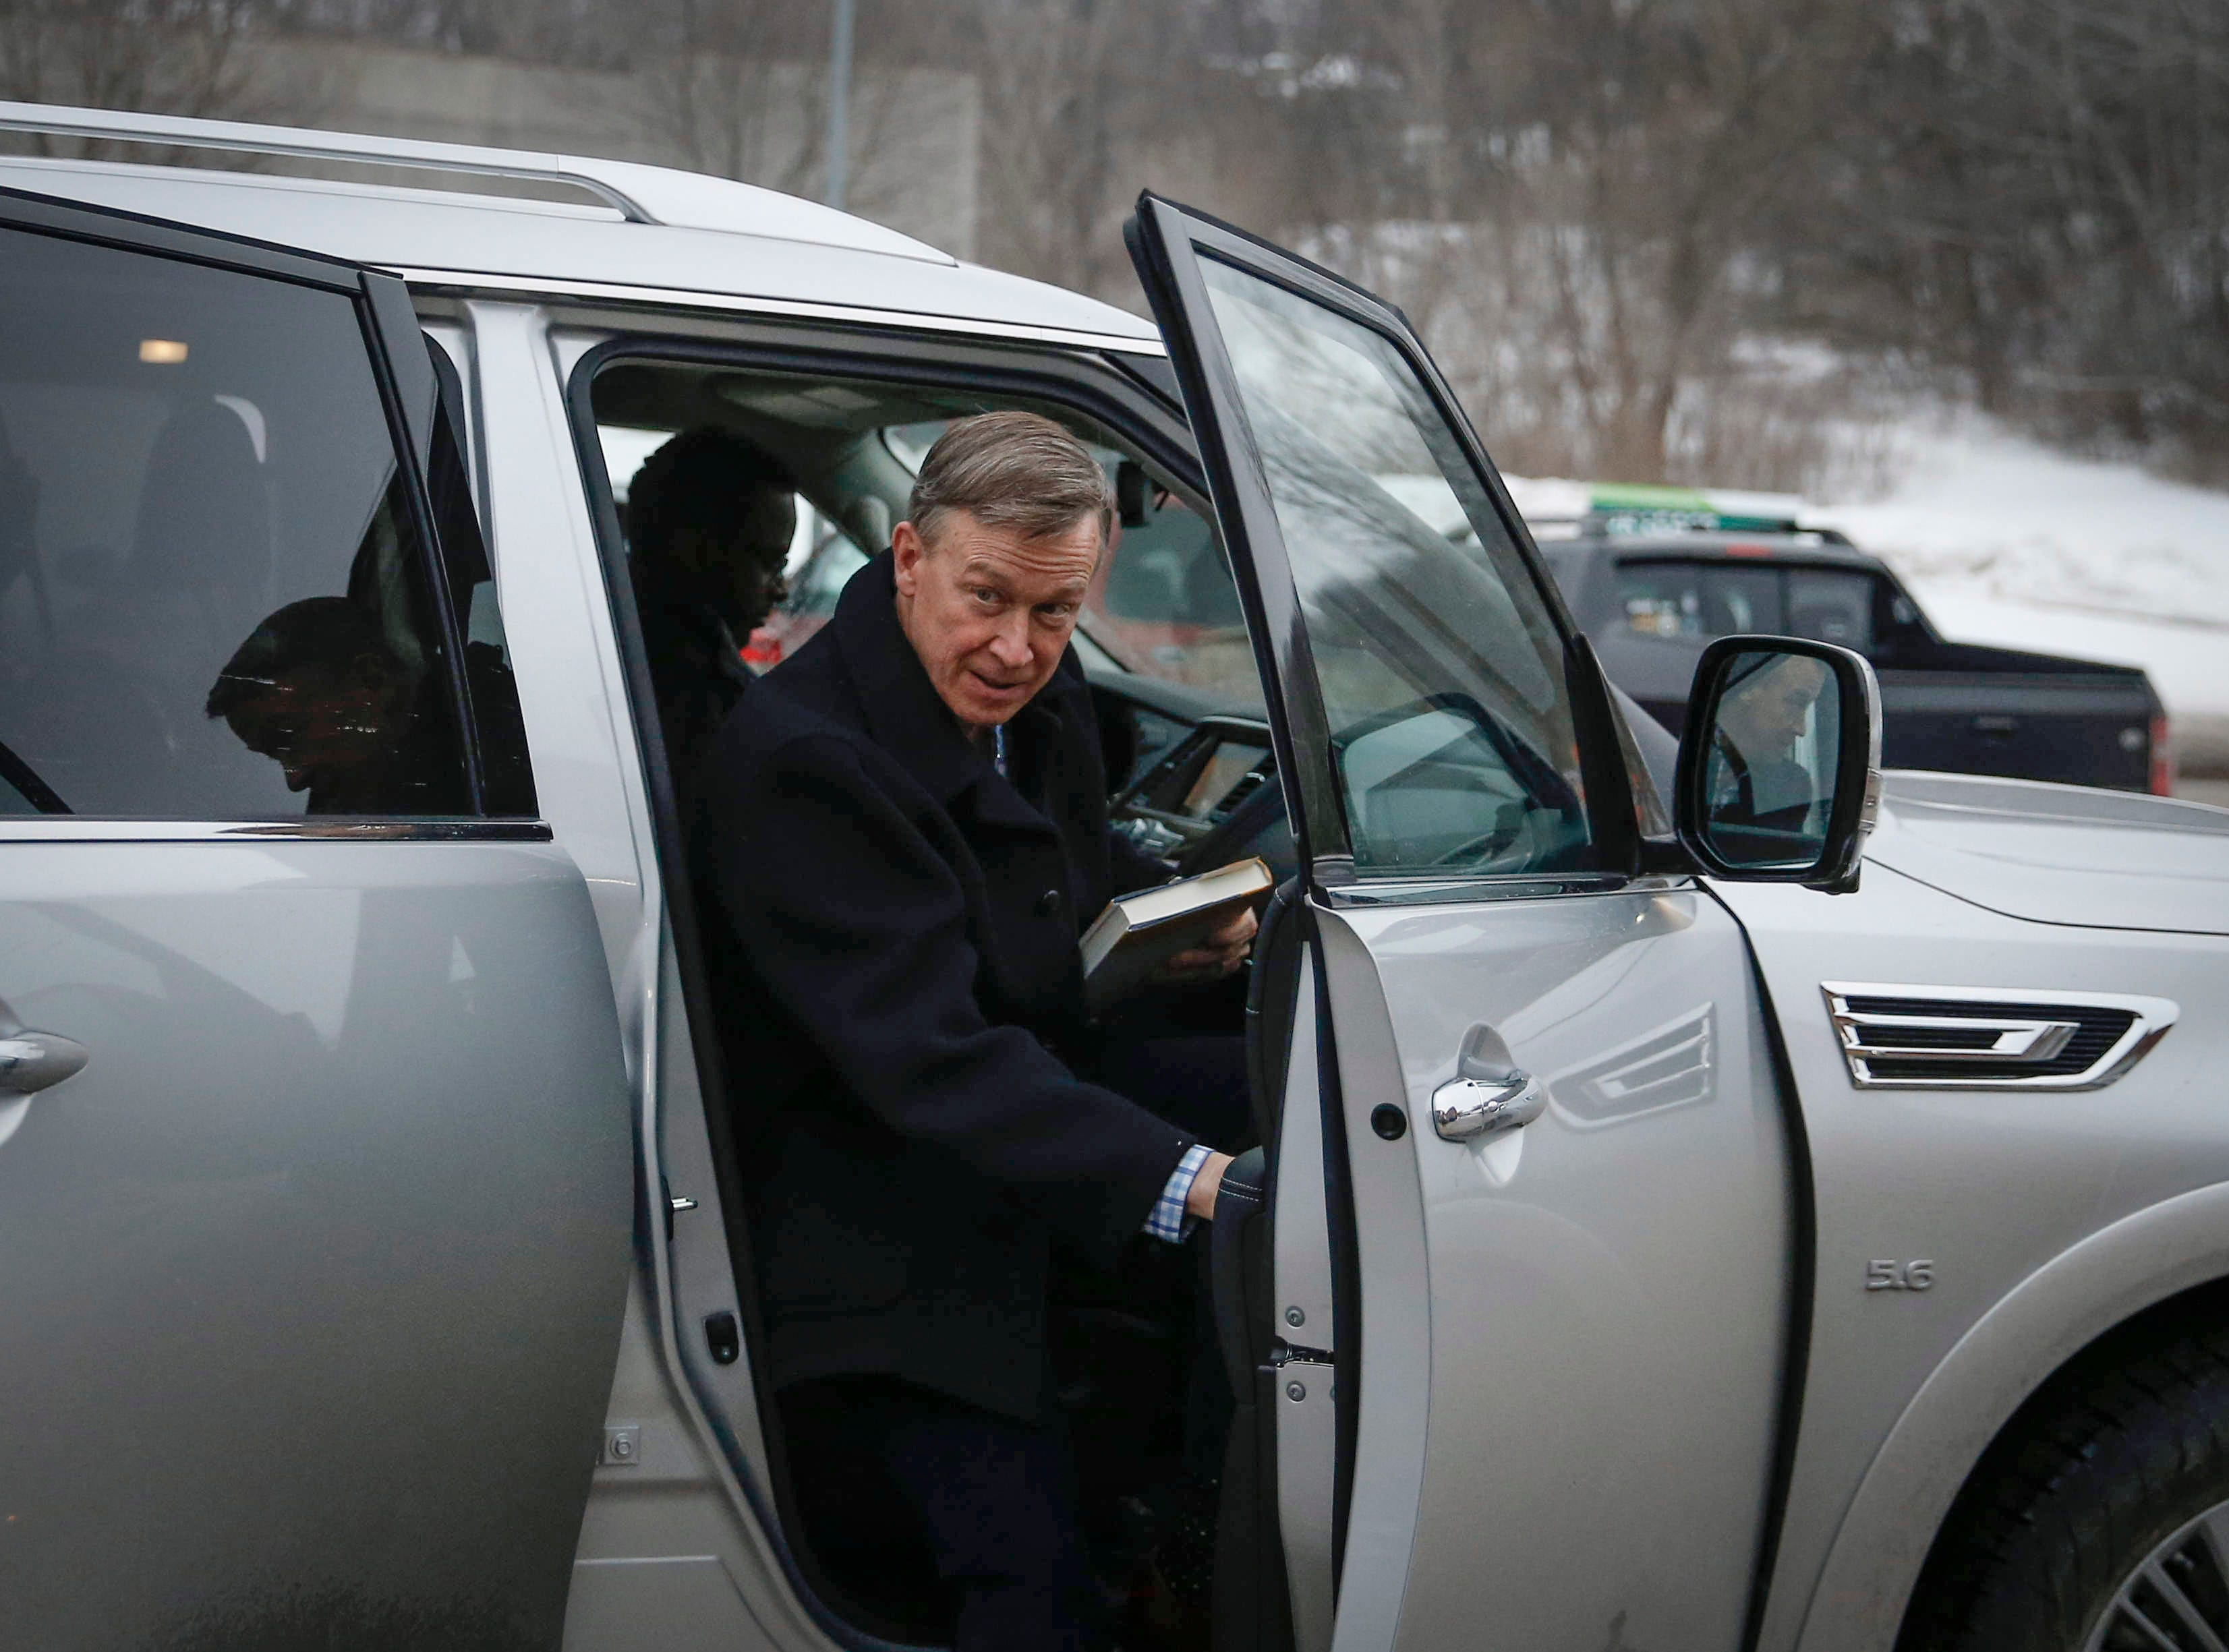 John Hickenlooper, former Colorado governor and current Democratic presidential candidate hopeful, exits his vehicle tp speak to supporters on Friday, March 8, 2019, at Confluence Brewery in Des Moines.